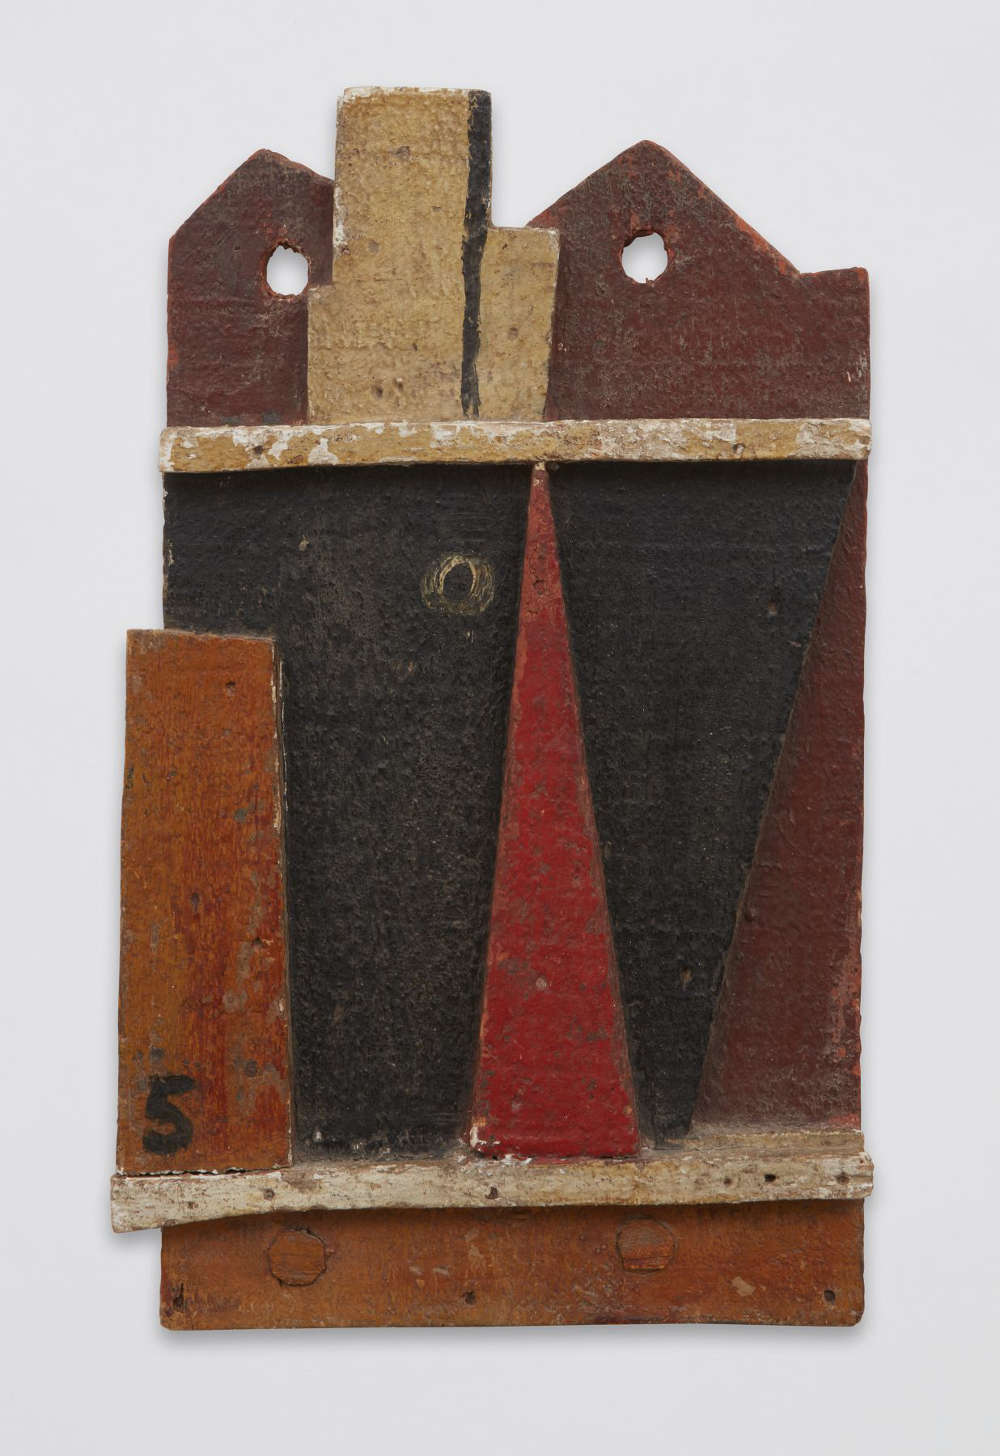 Joaquín Torres-García, Objet plastique (Barco abstracto) [Plastic Object (Abstract Ship)], 1928. Oil on wood, 15 5/8 x 9 1/2 x 1 1/2 inches (39.7 x 24.1 x 3.8 cm)